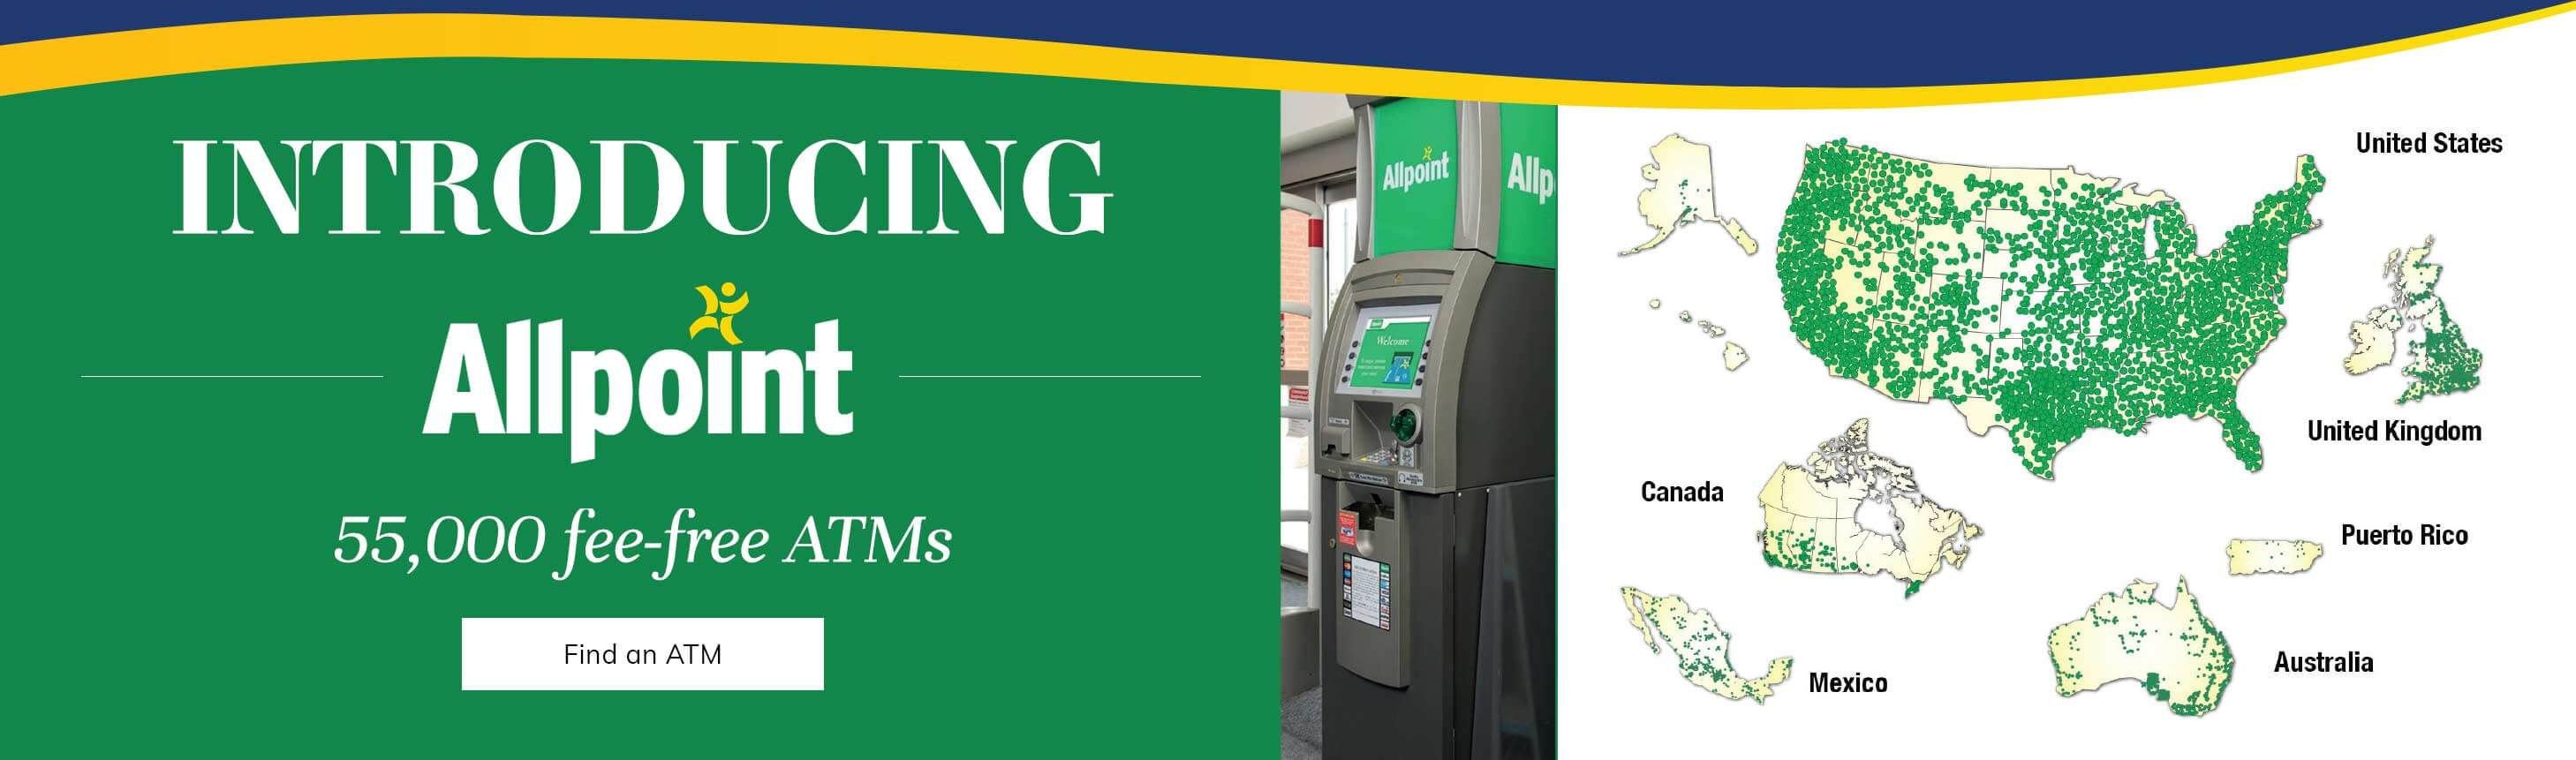 Introducing Allpoint, 55,000 fee-free ATMS. Find an ATM